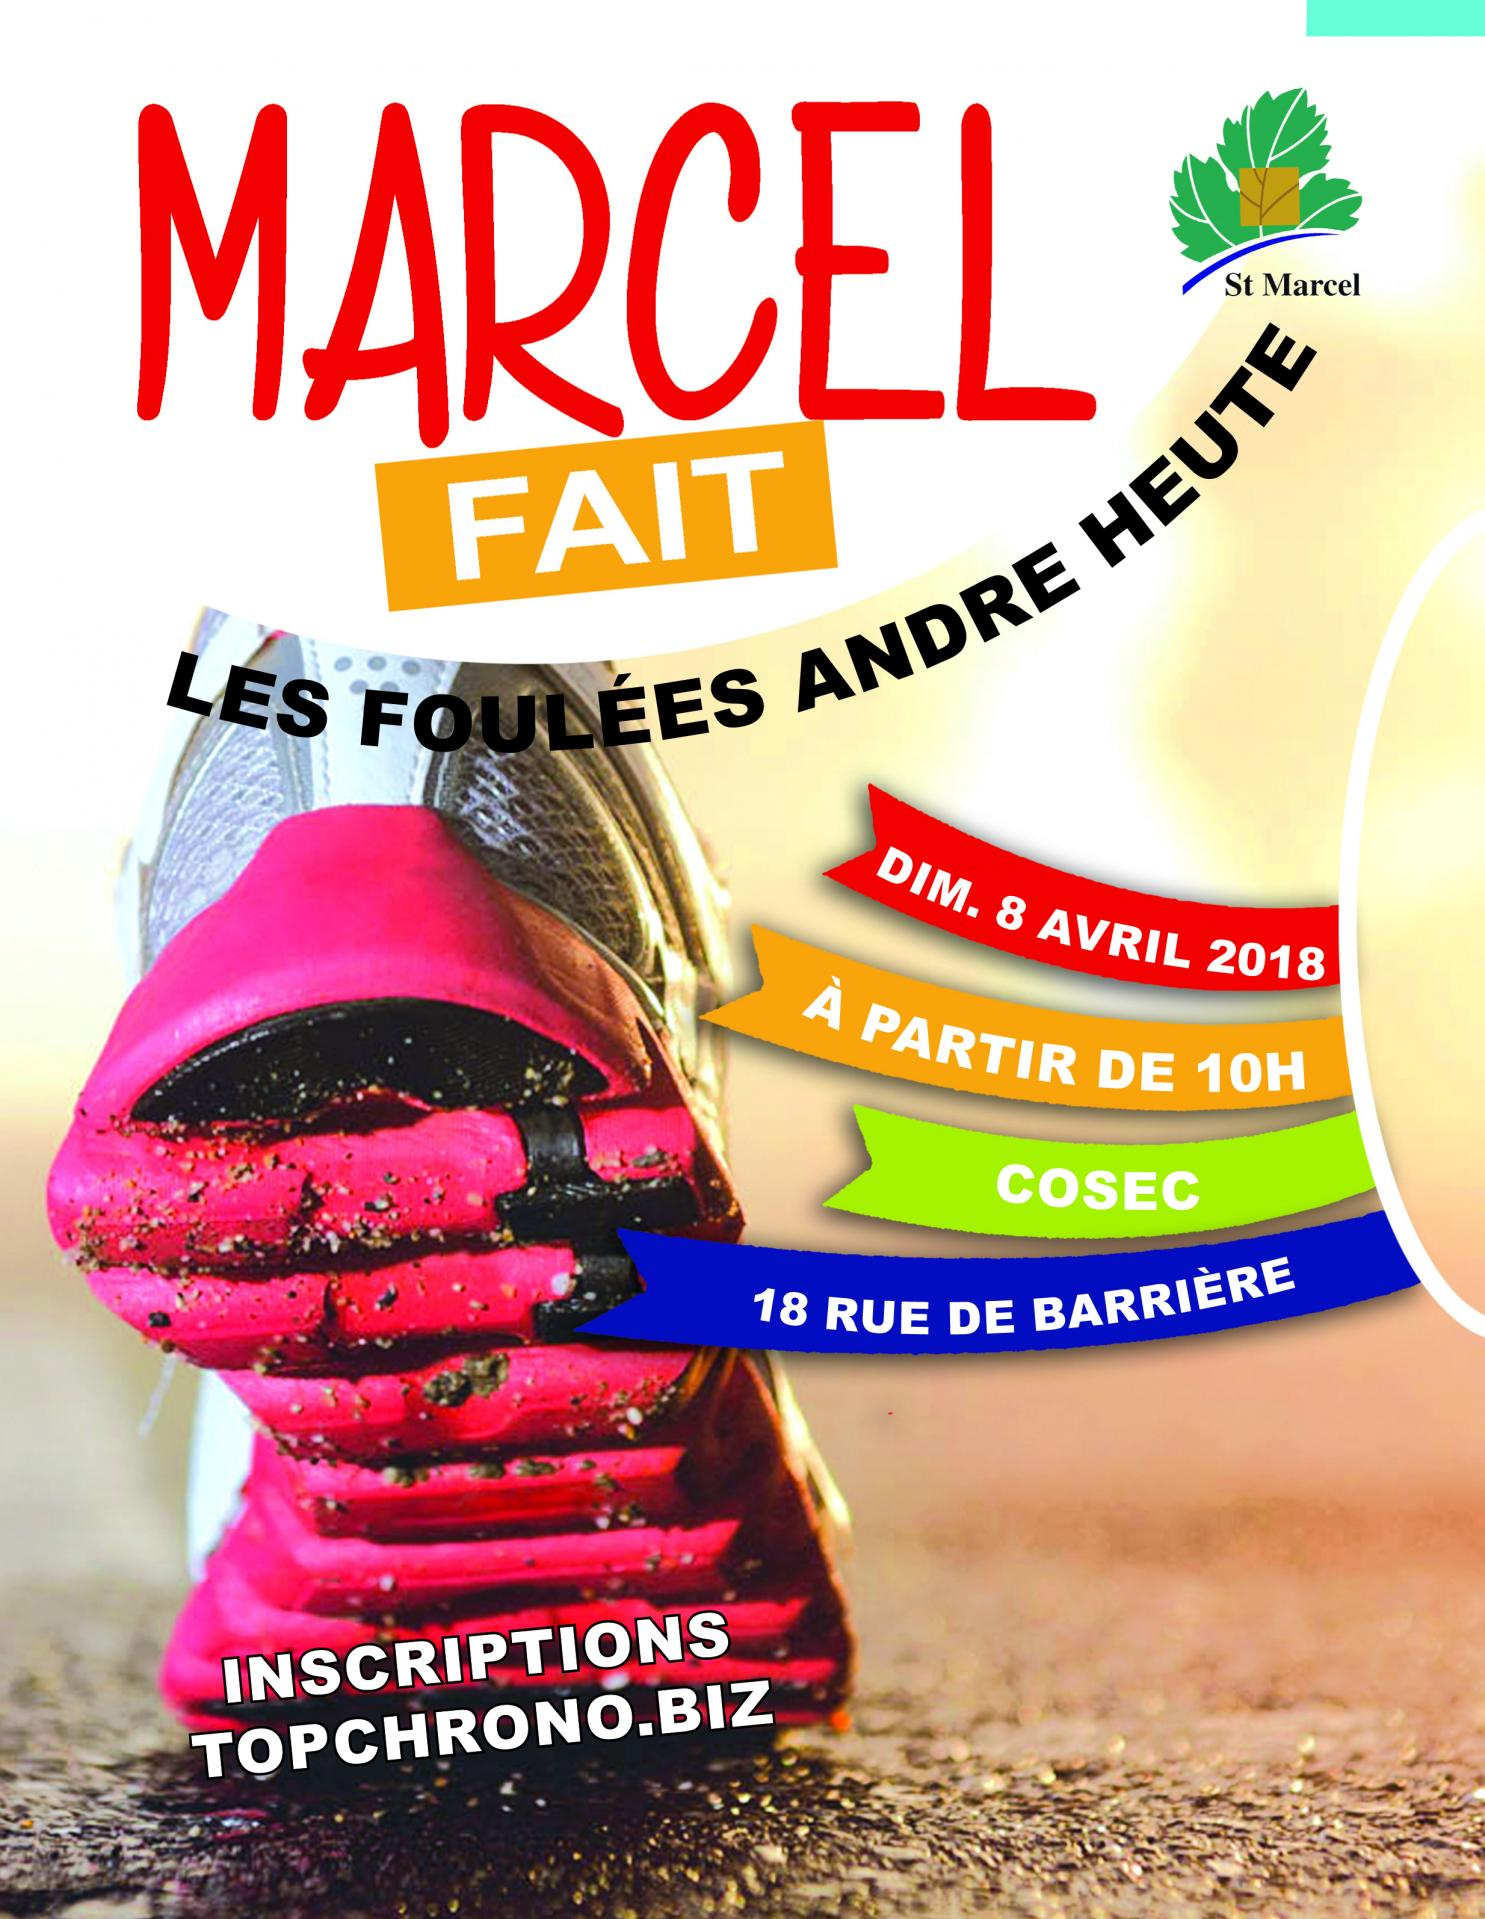 Foulees affiche